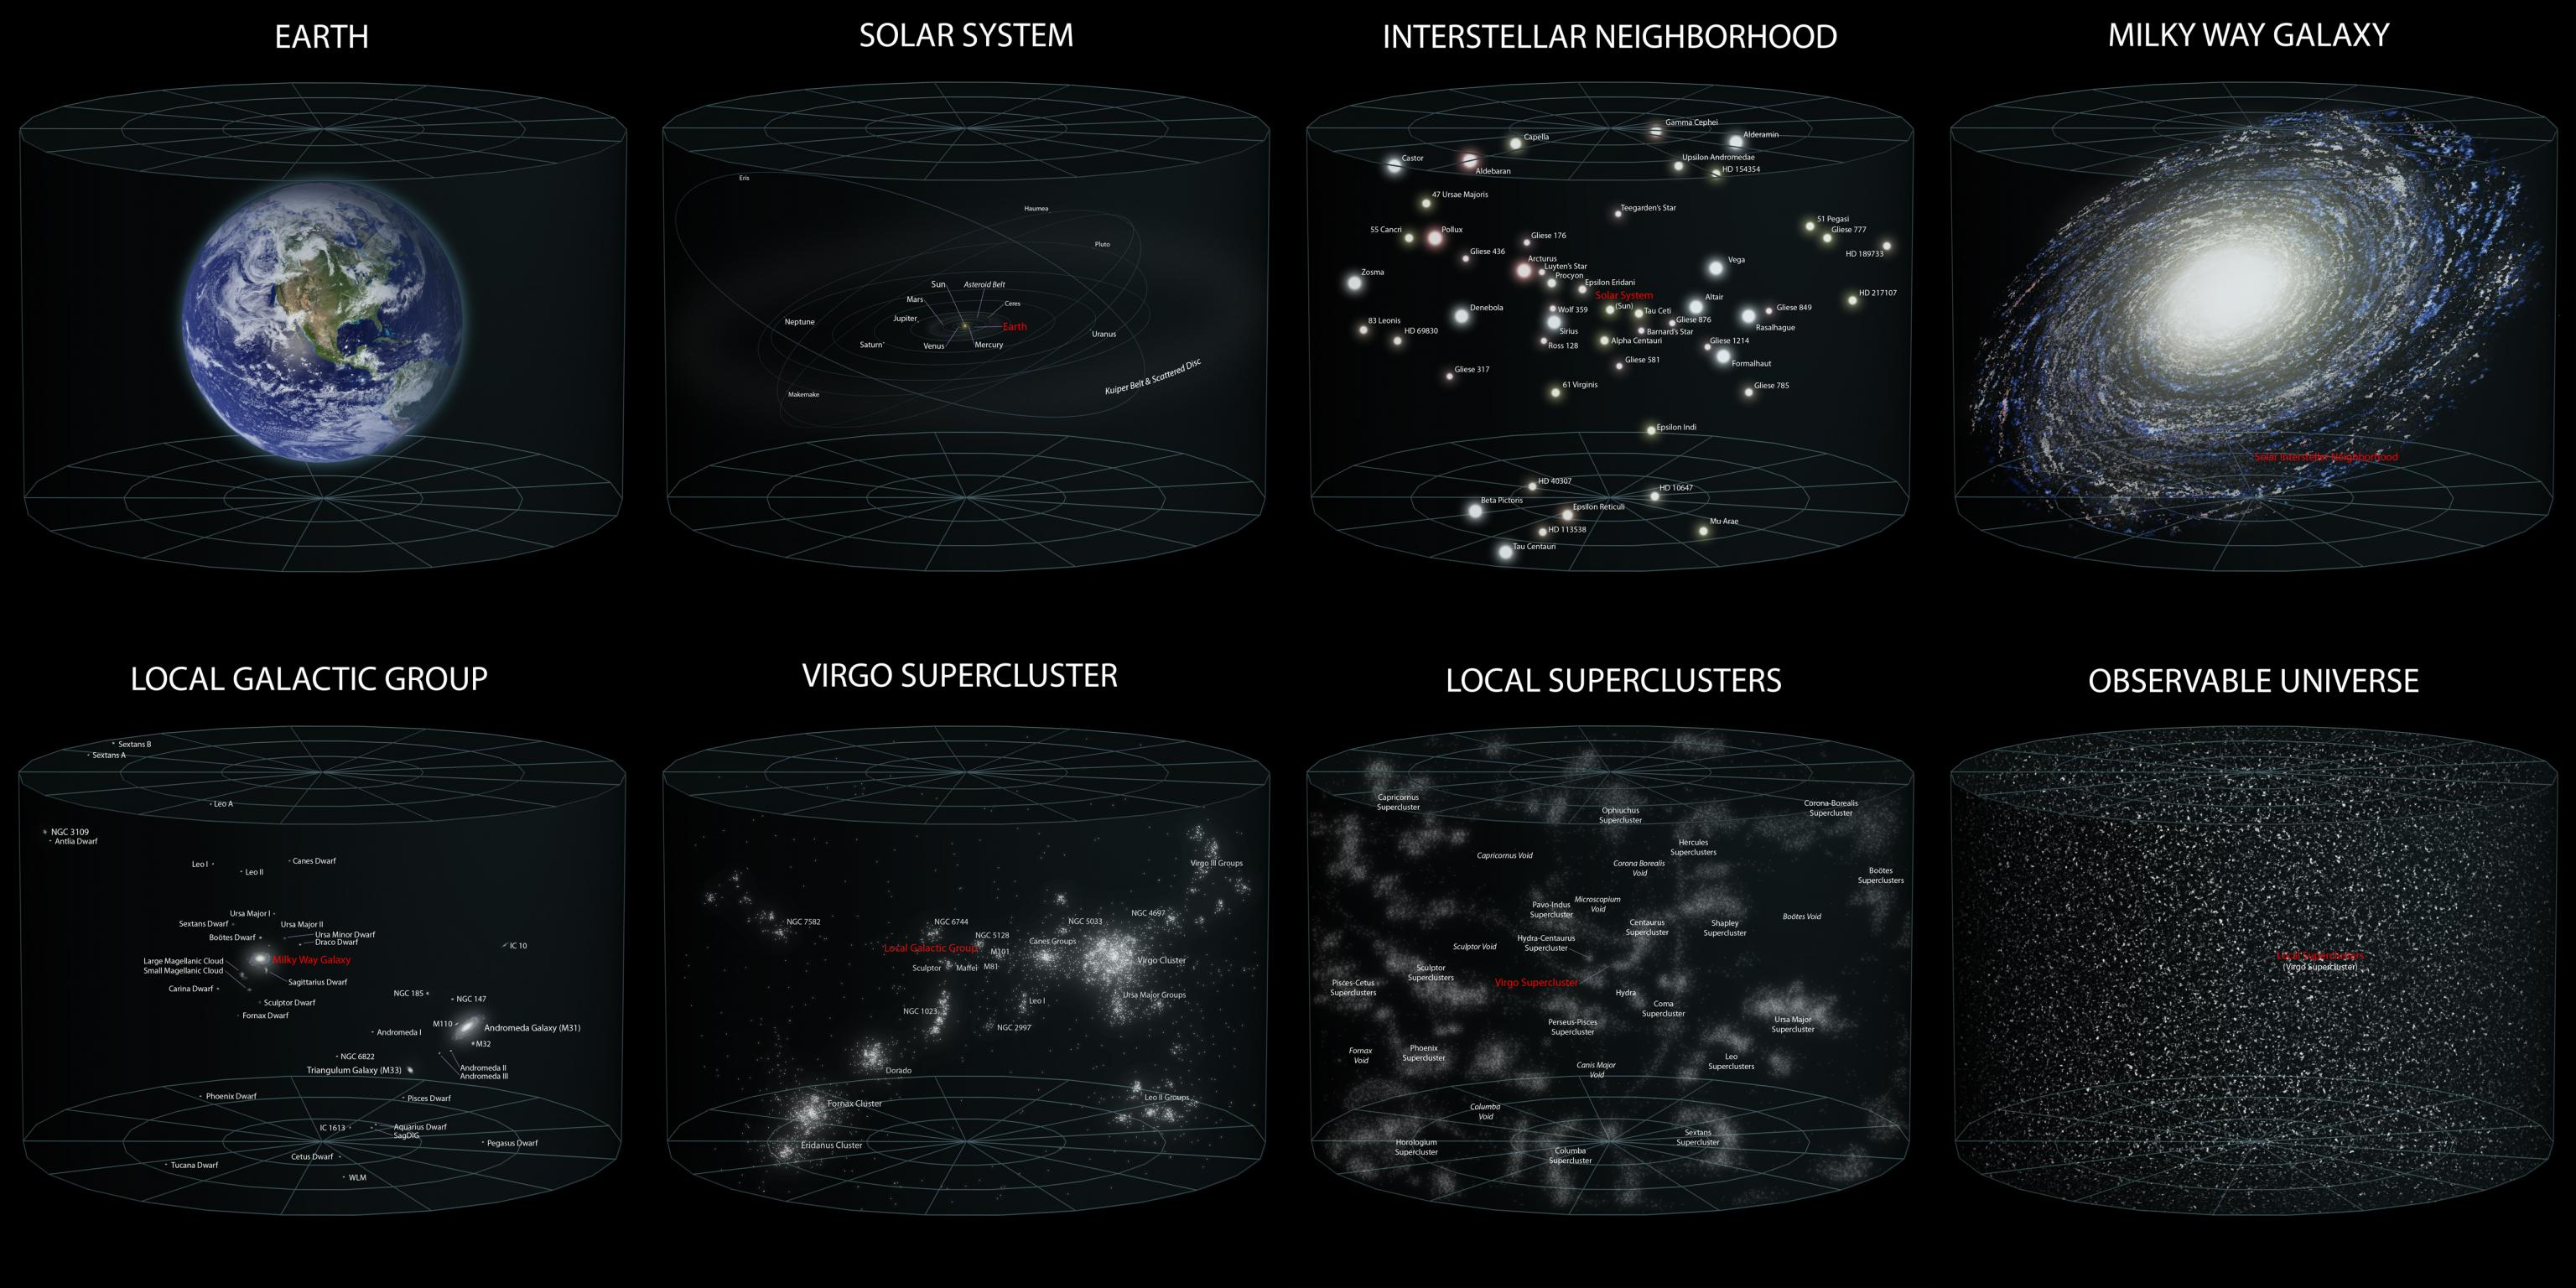 Earth's_Location_in_the_Universe_SMALLER_(JPEG).jpg